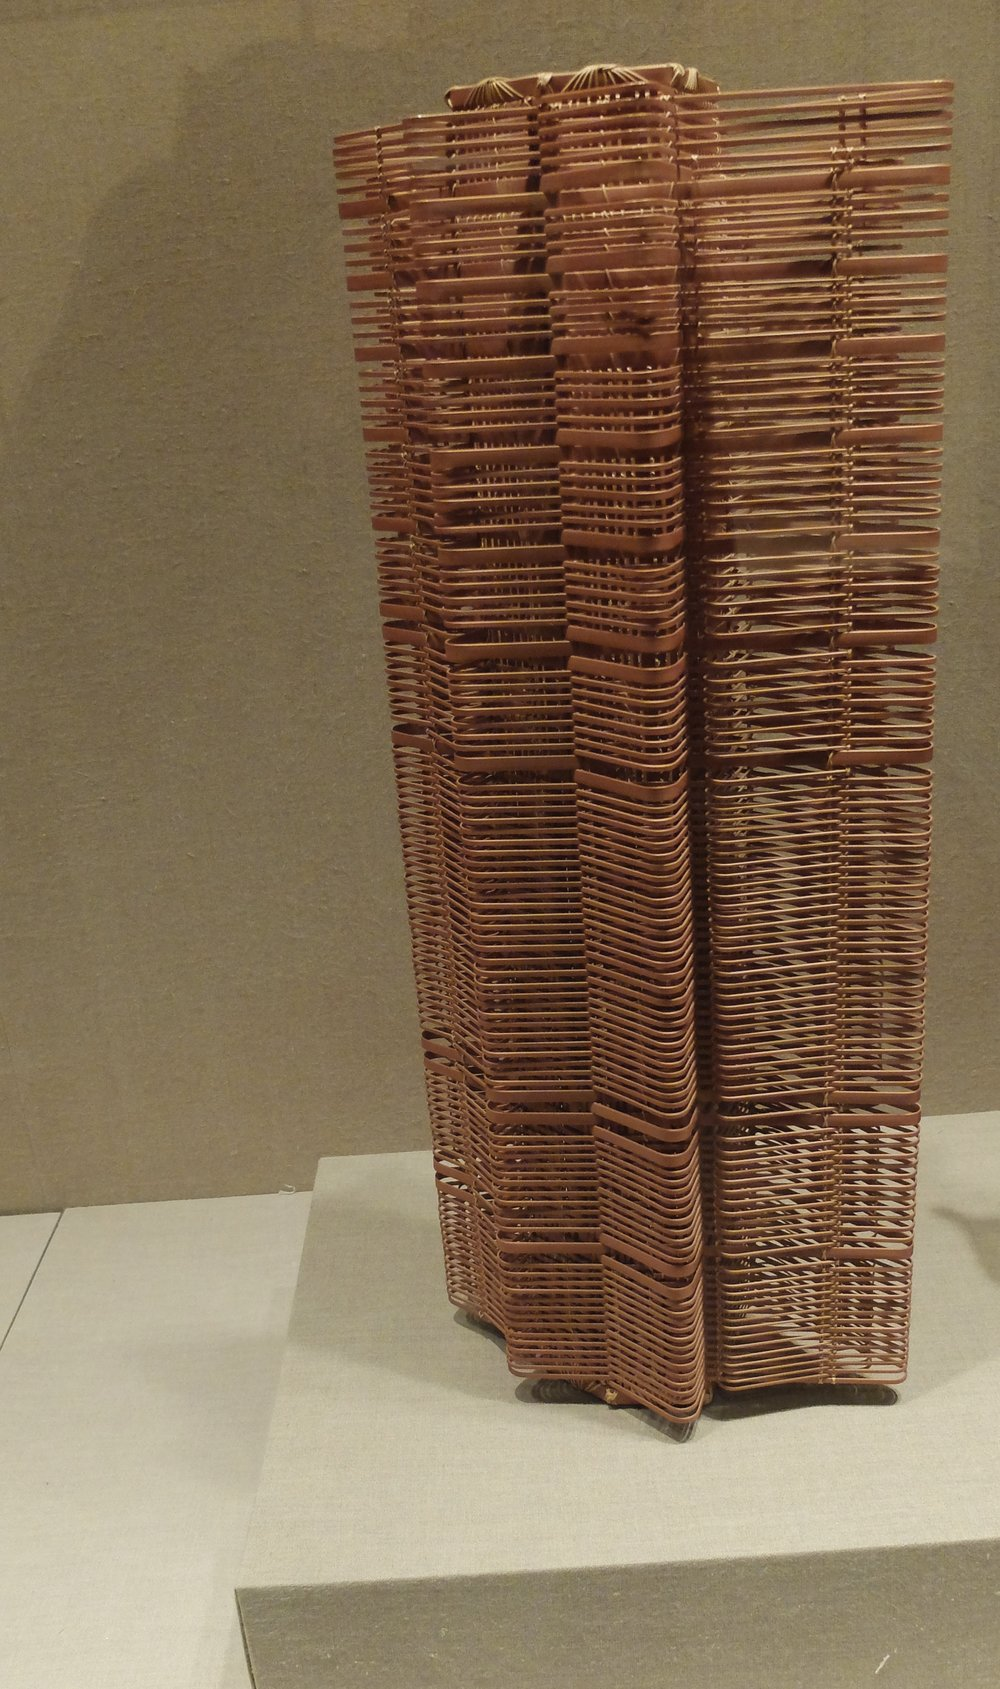 Skyscraper made of rattan, at The Met.